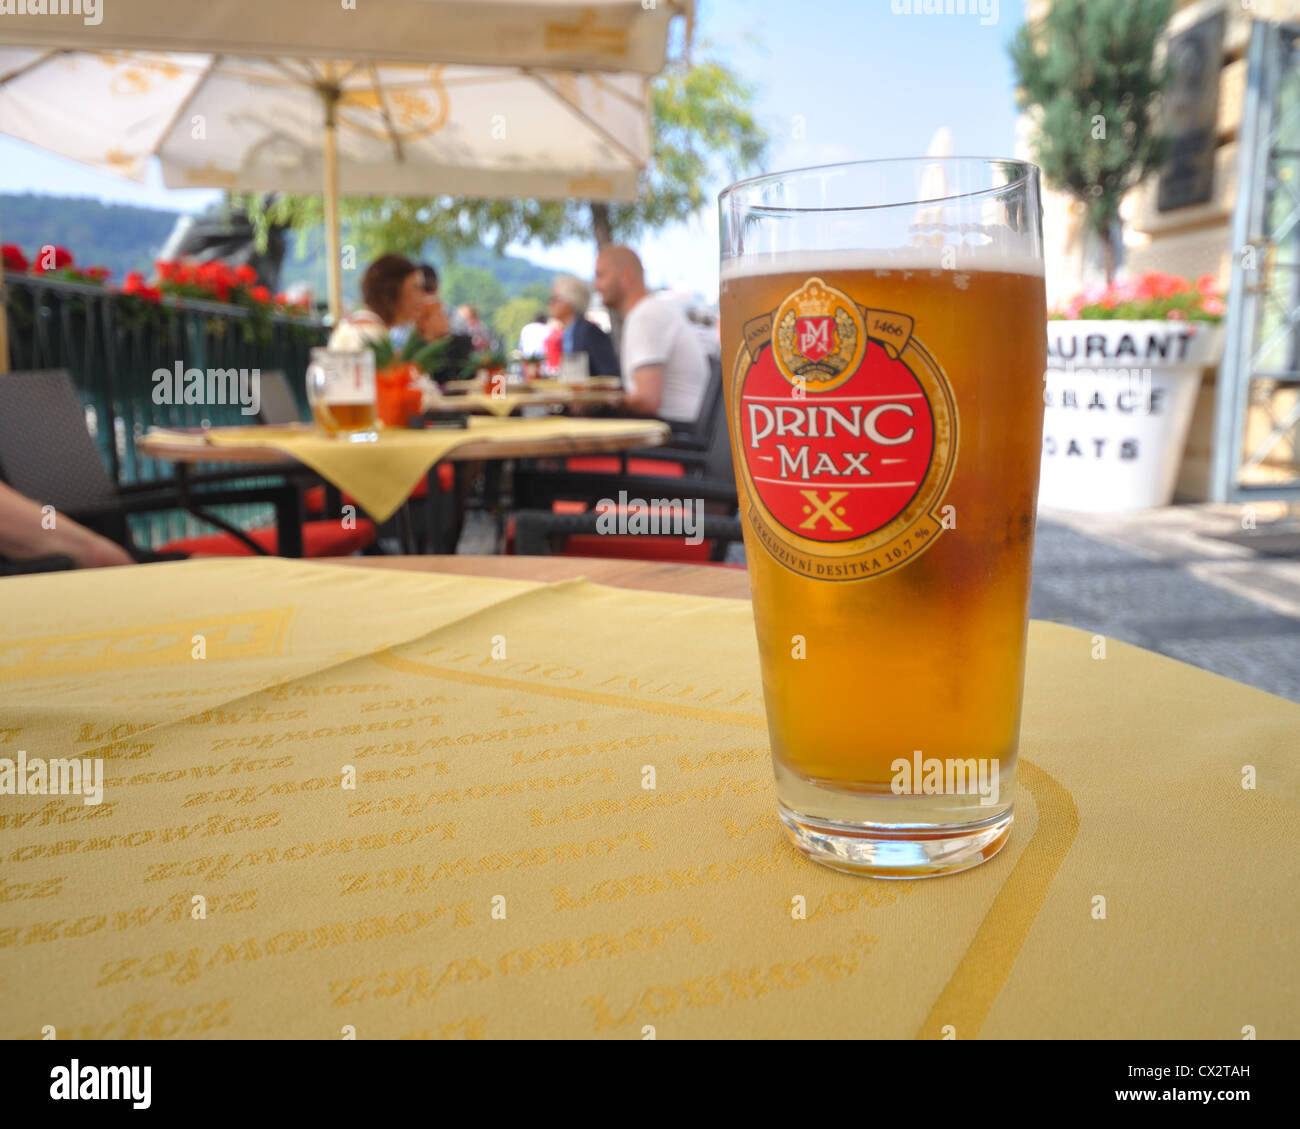 Glass of beer on a restaurant table, Prague, Czech Republic. - Stock Image